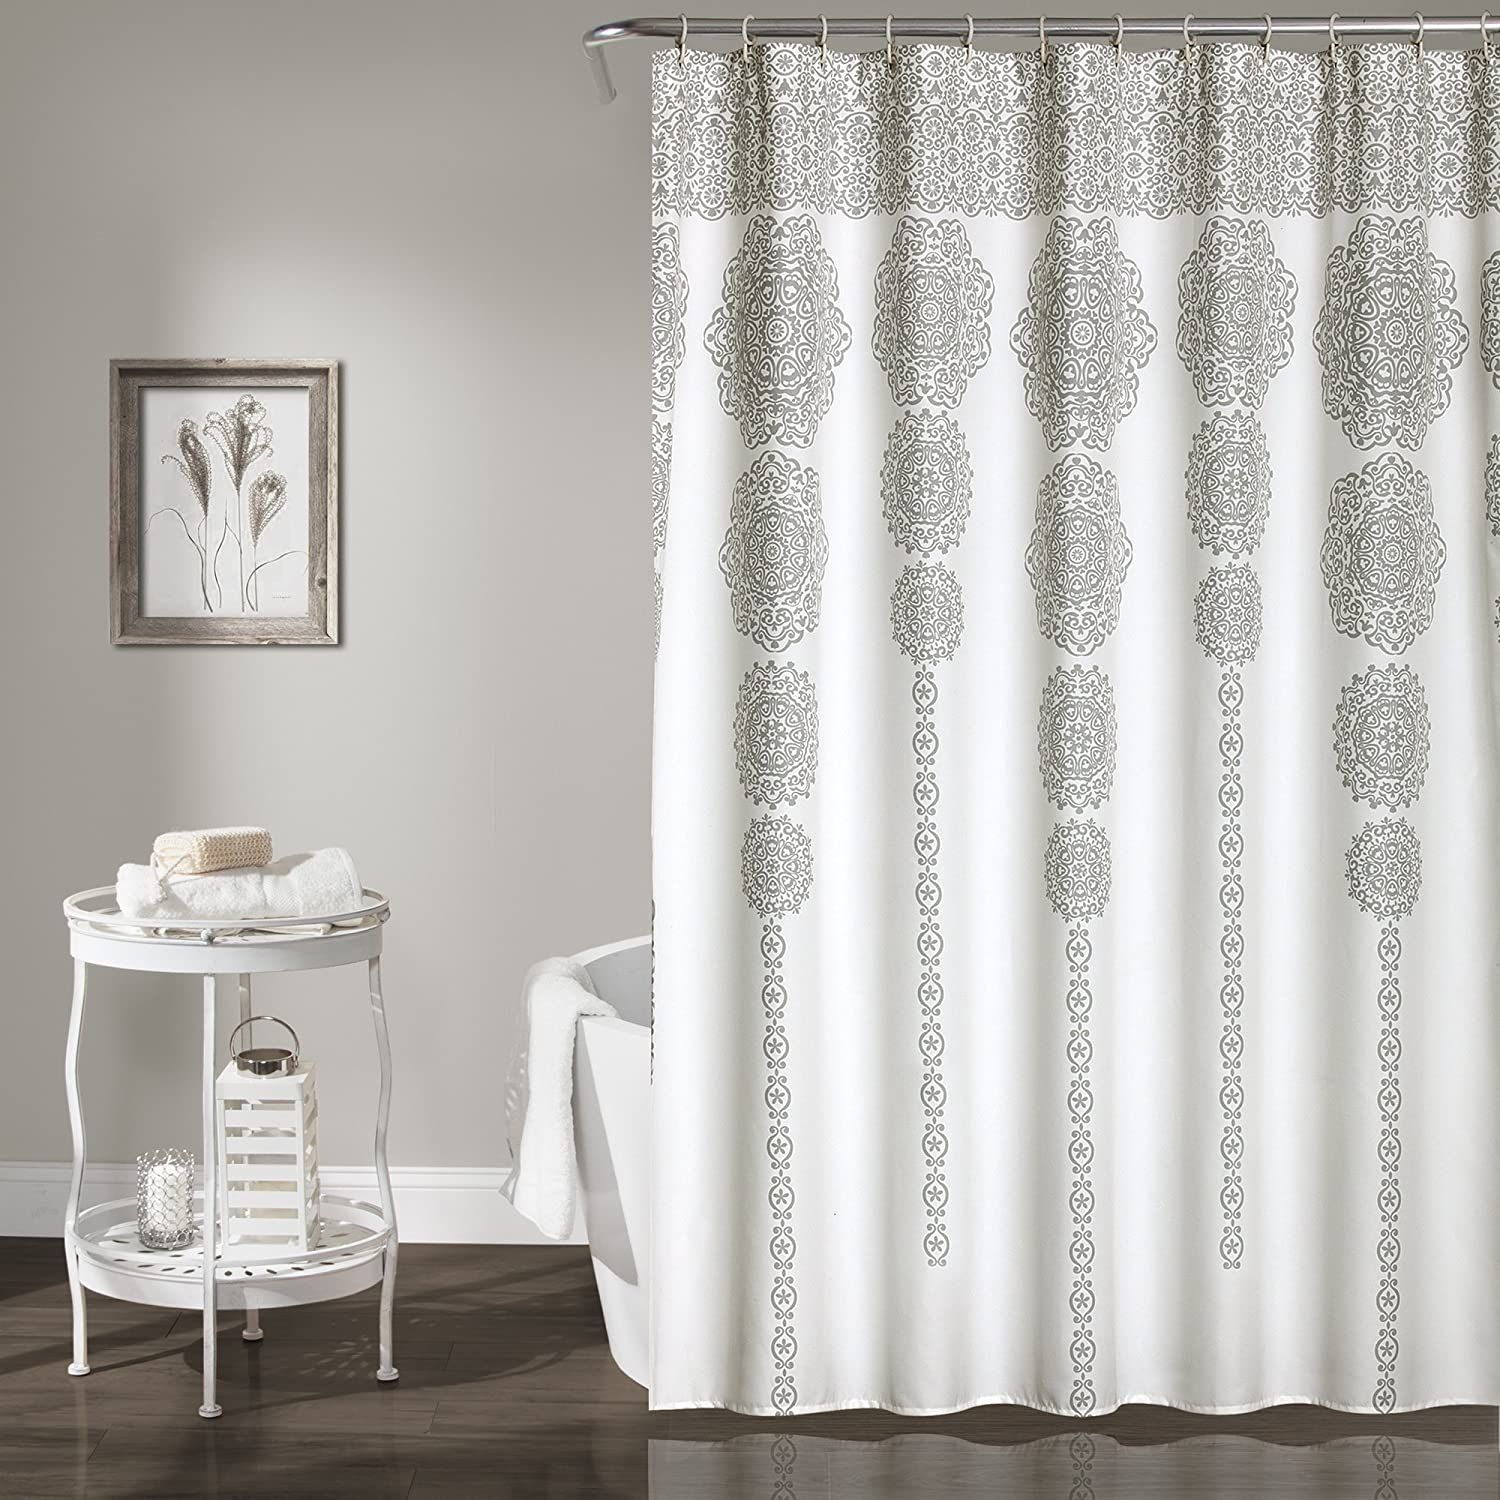 shower and product today gray collection bath free charles shipping snow curtain bedding grey inch leopard andrew white overstock